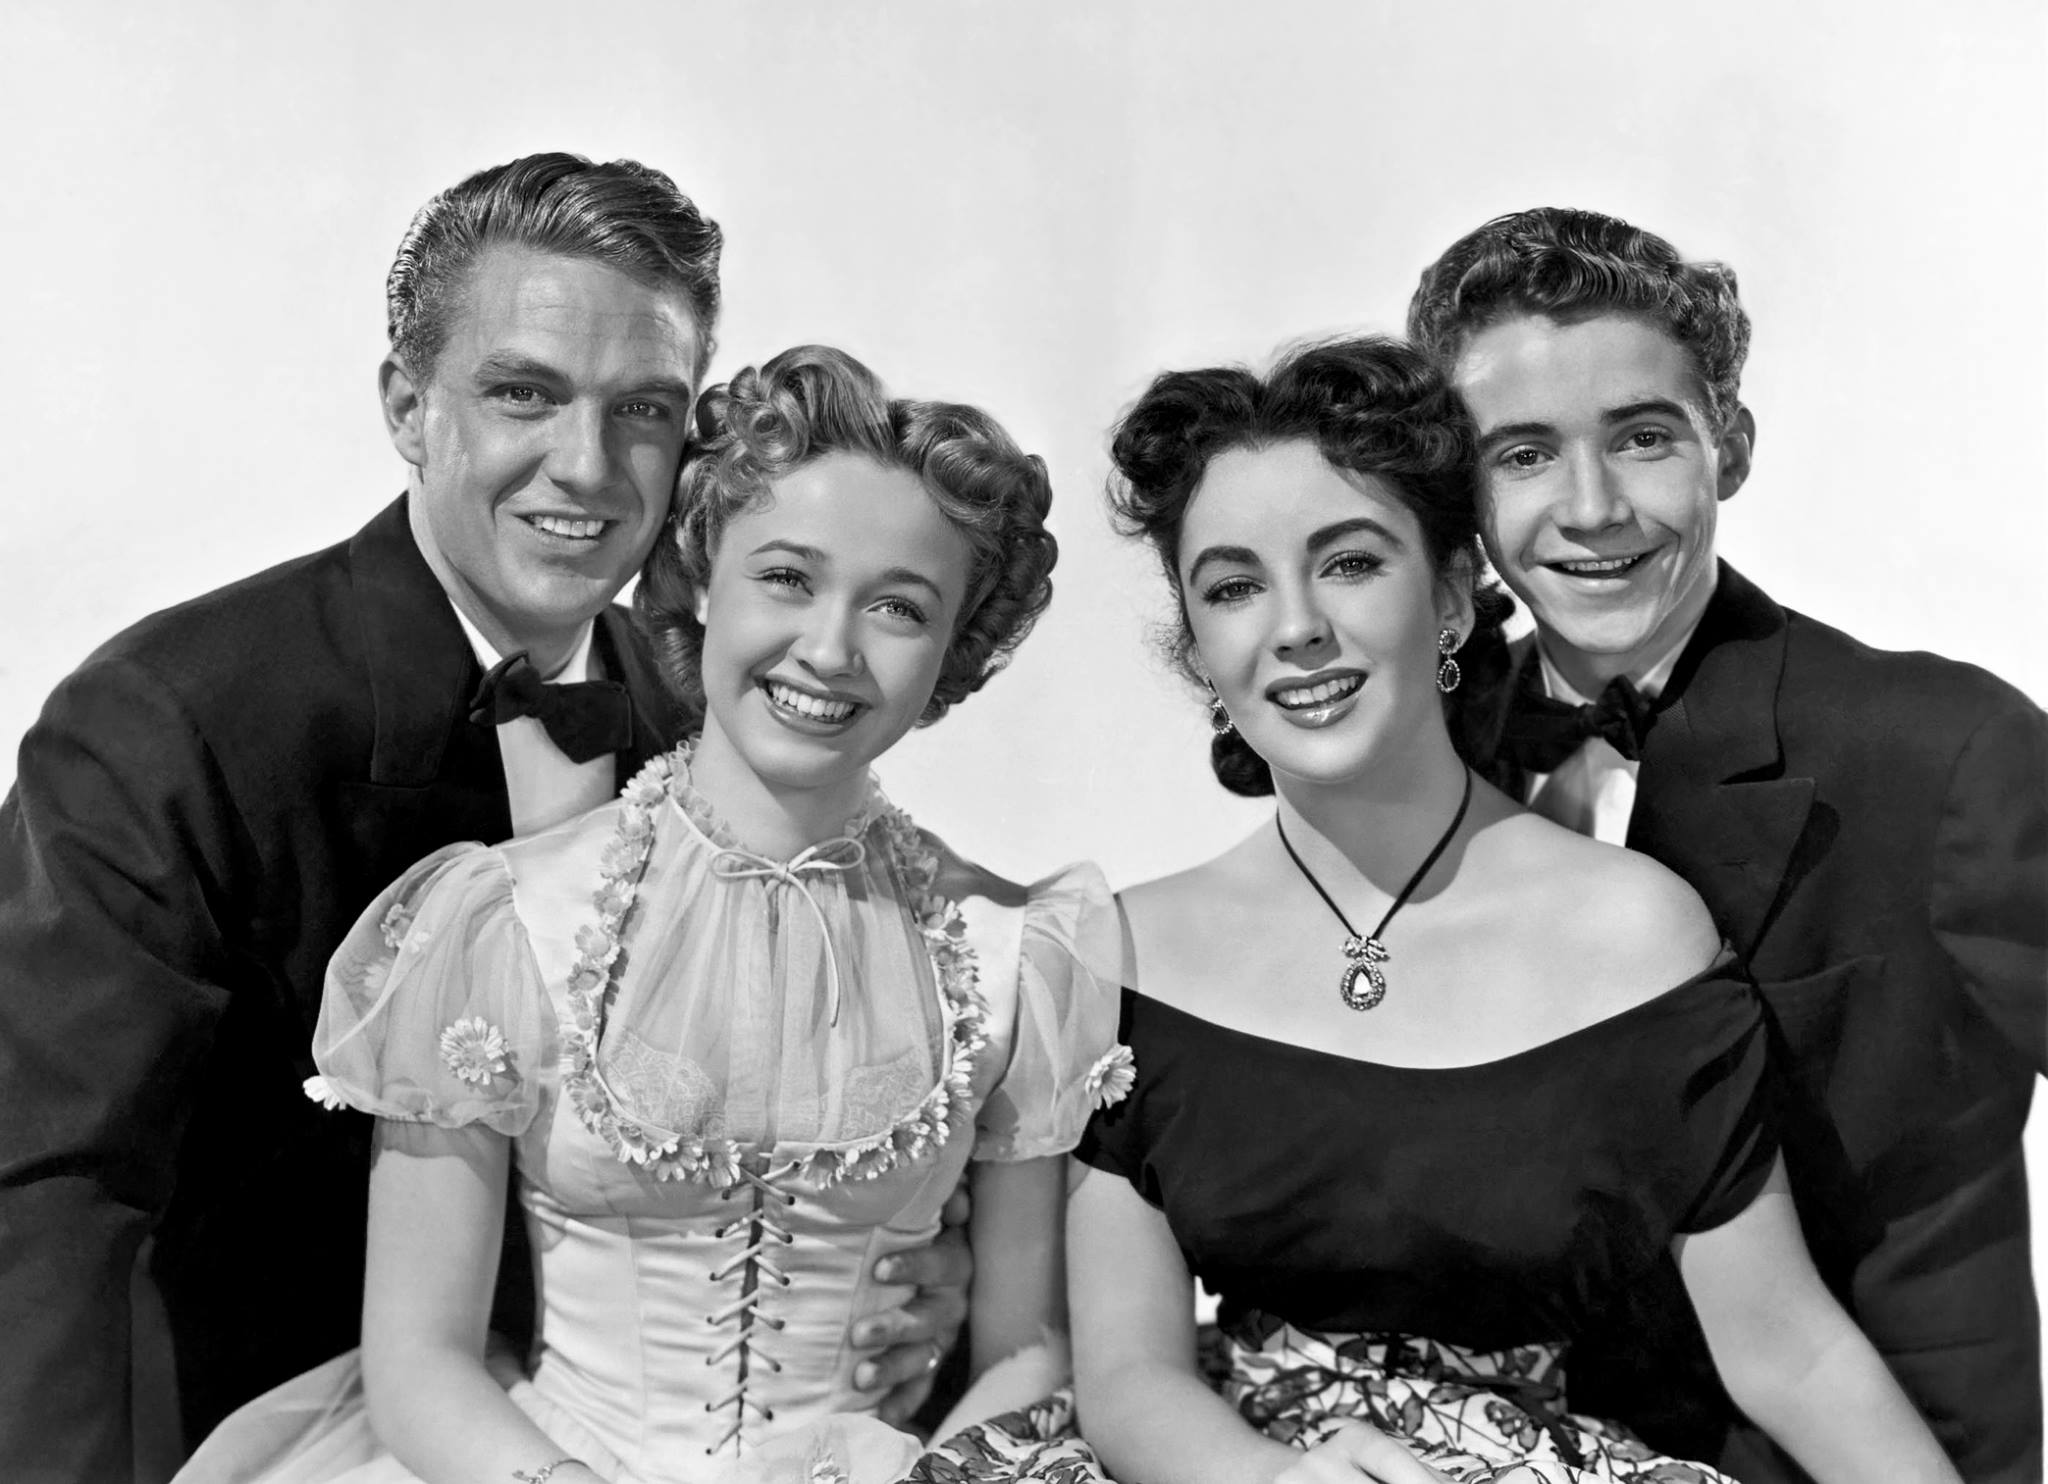 Robert Stack, Jane Powell, Elizabeth Taylor, and Scotty Beckett